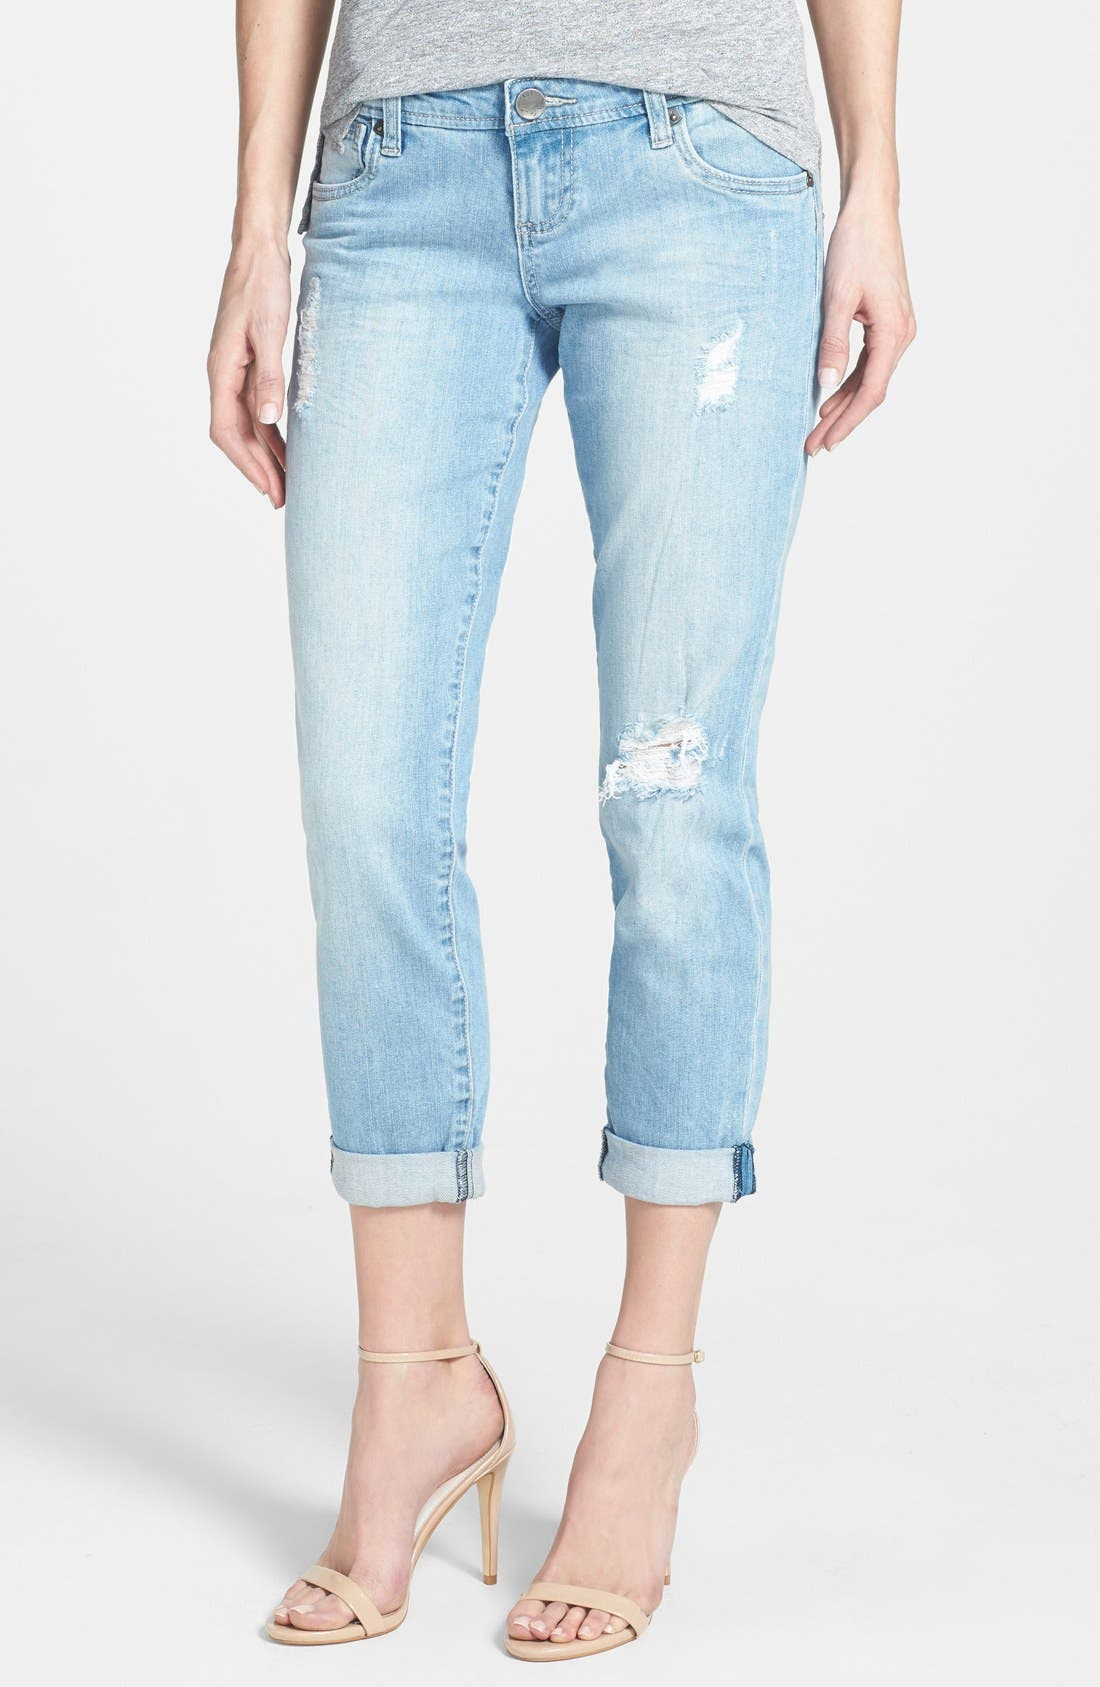 Main Image - KUT from the Kloth 'Adele' Distressed Crop Boyfriend Jeans (Slick)